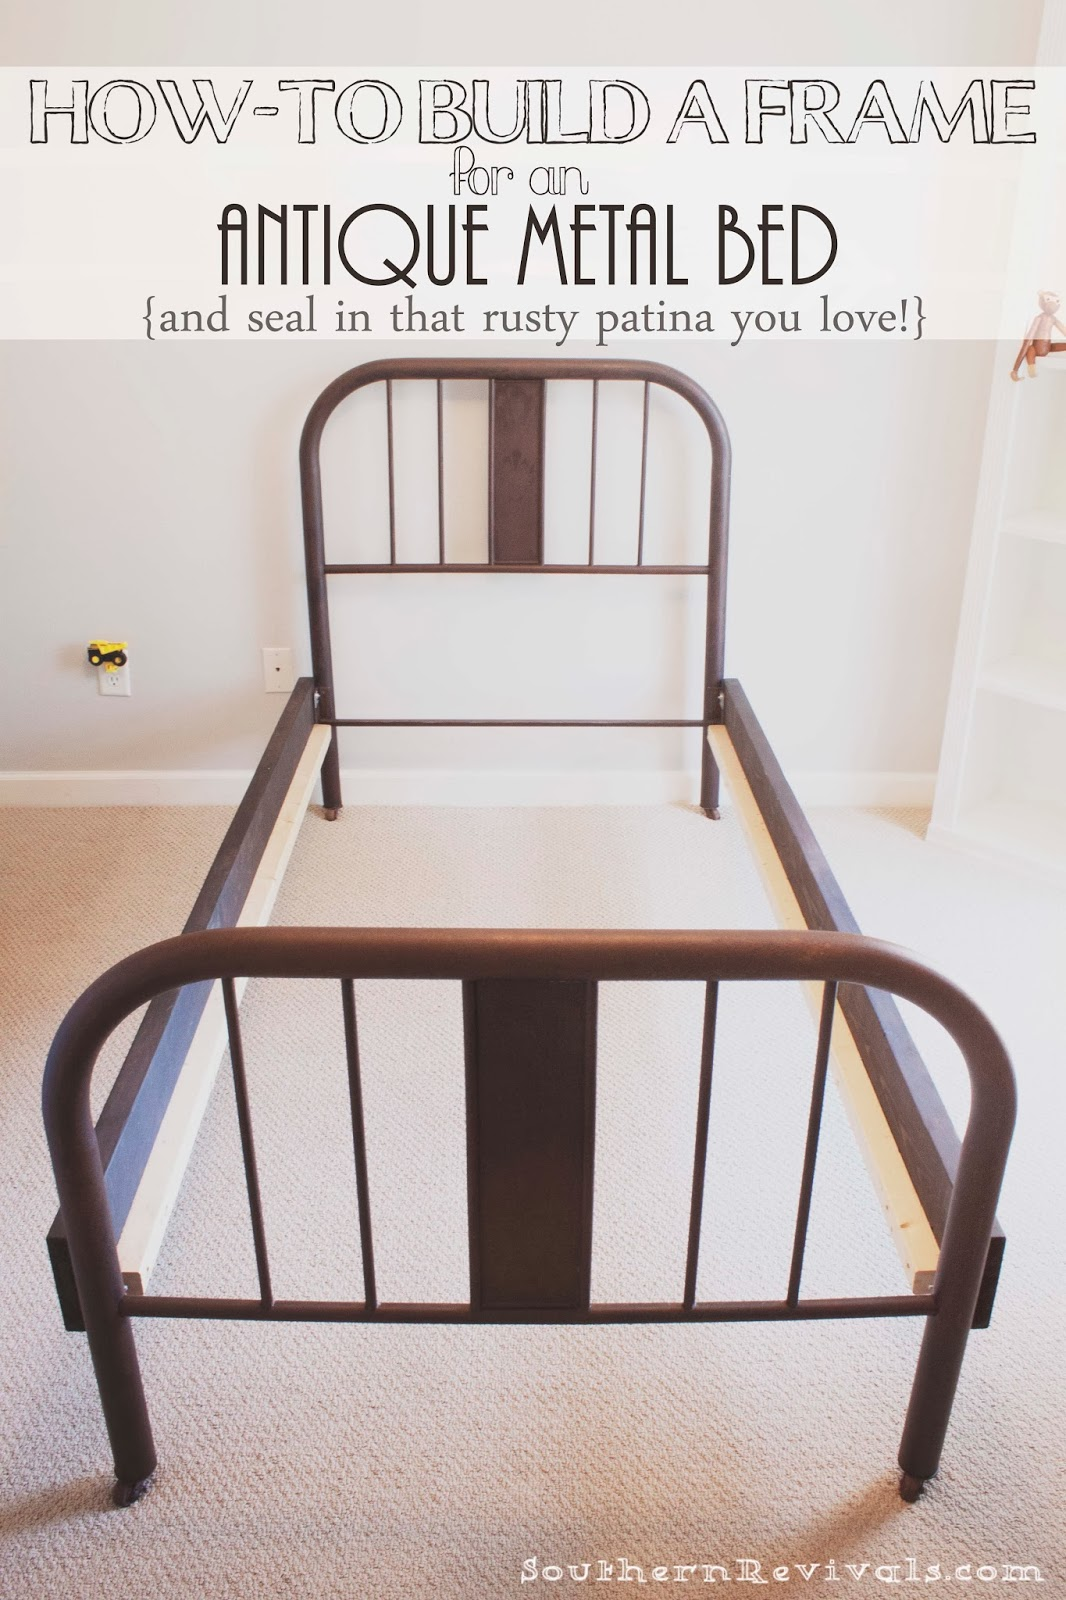 Antique Bed: How To Make A Frame For An Antique Metal Bed